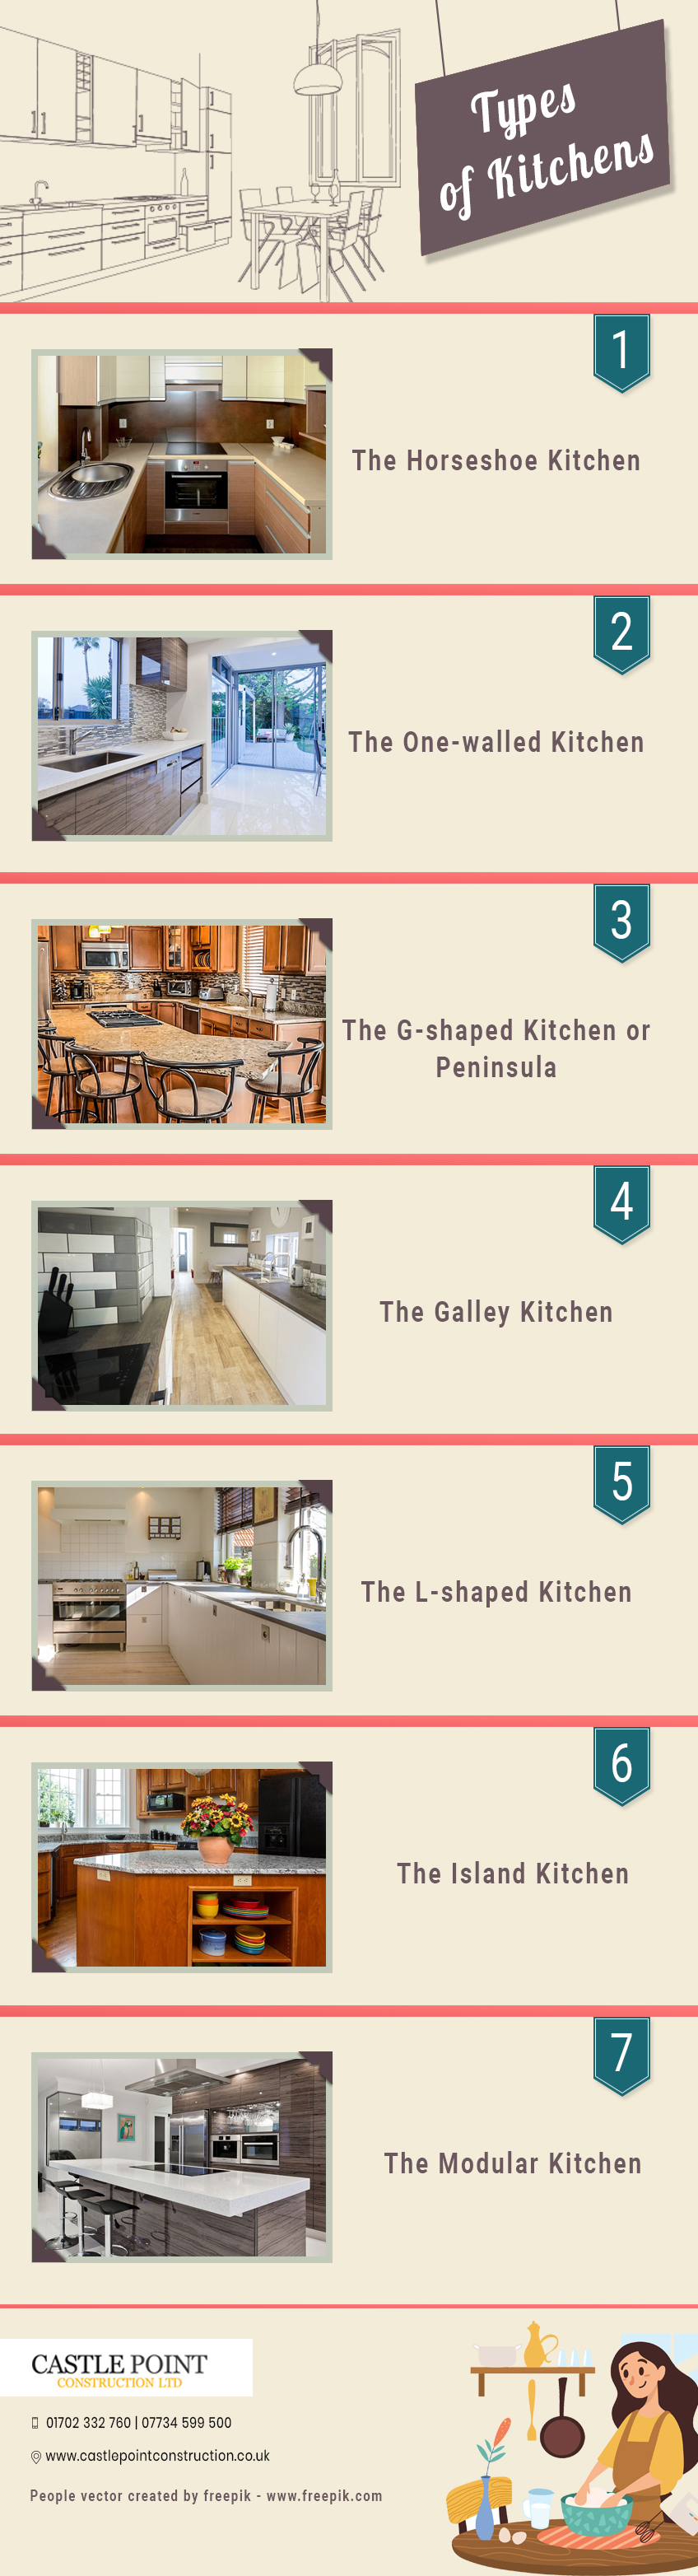 The-Different-Types-of-Kitchens